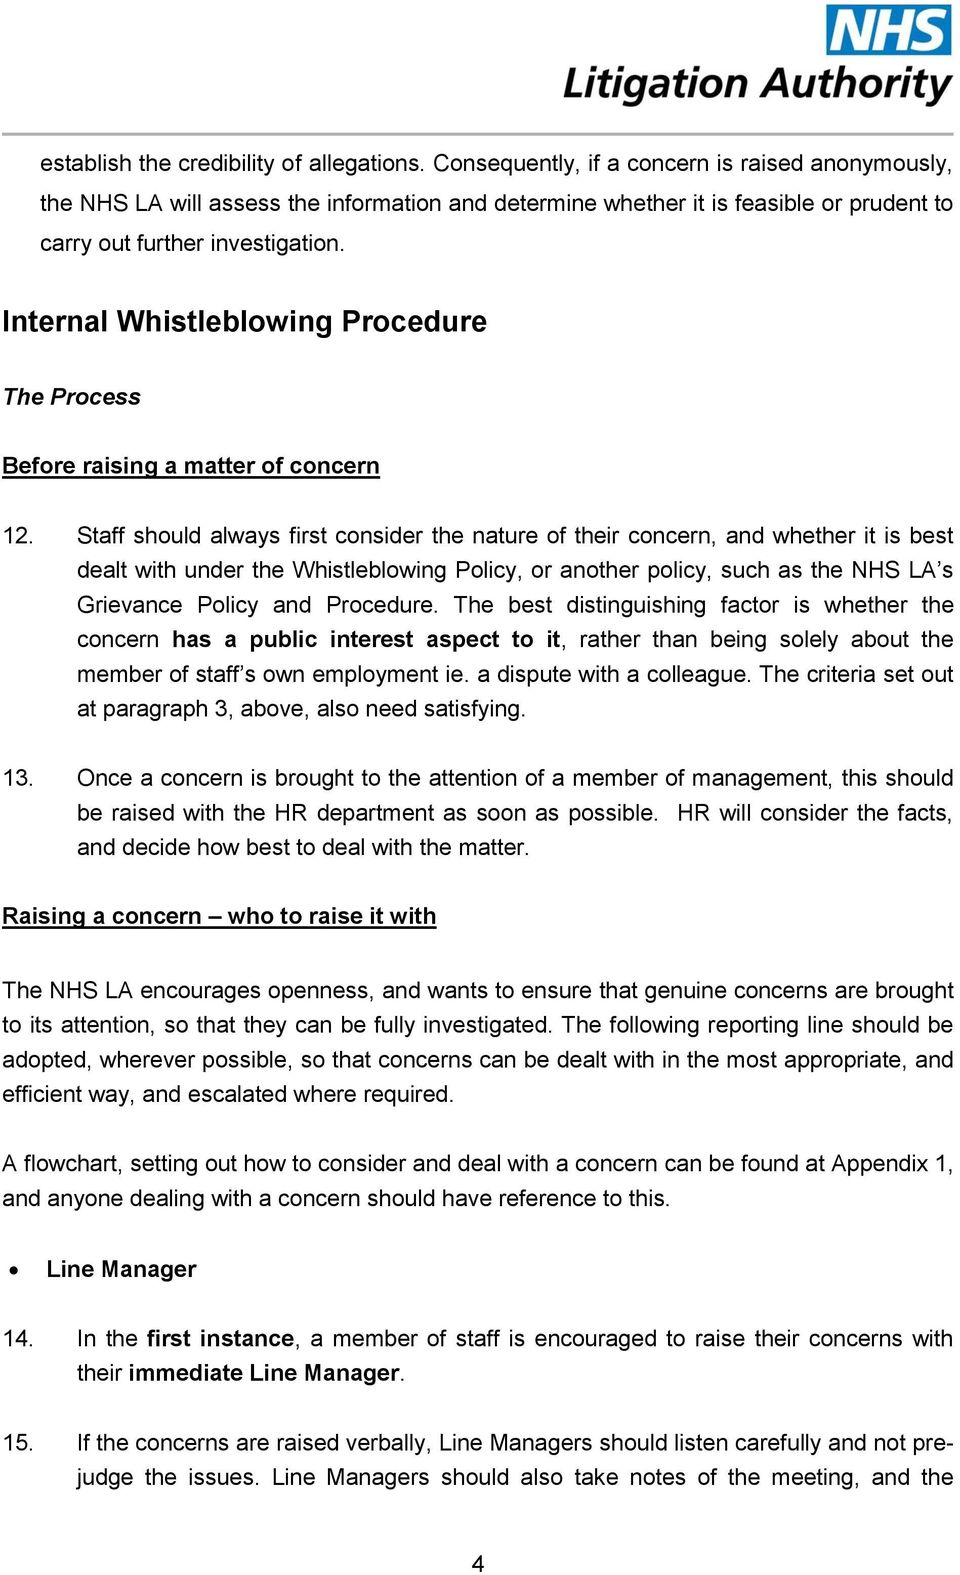 Internal Whistleblowing Procedure The Process Before raising a matter of concern 12.